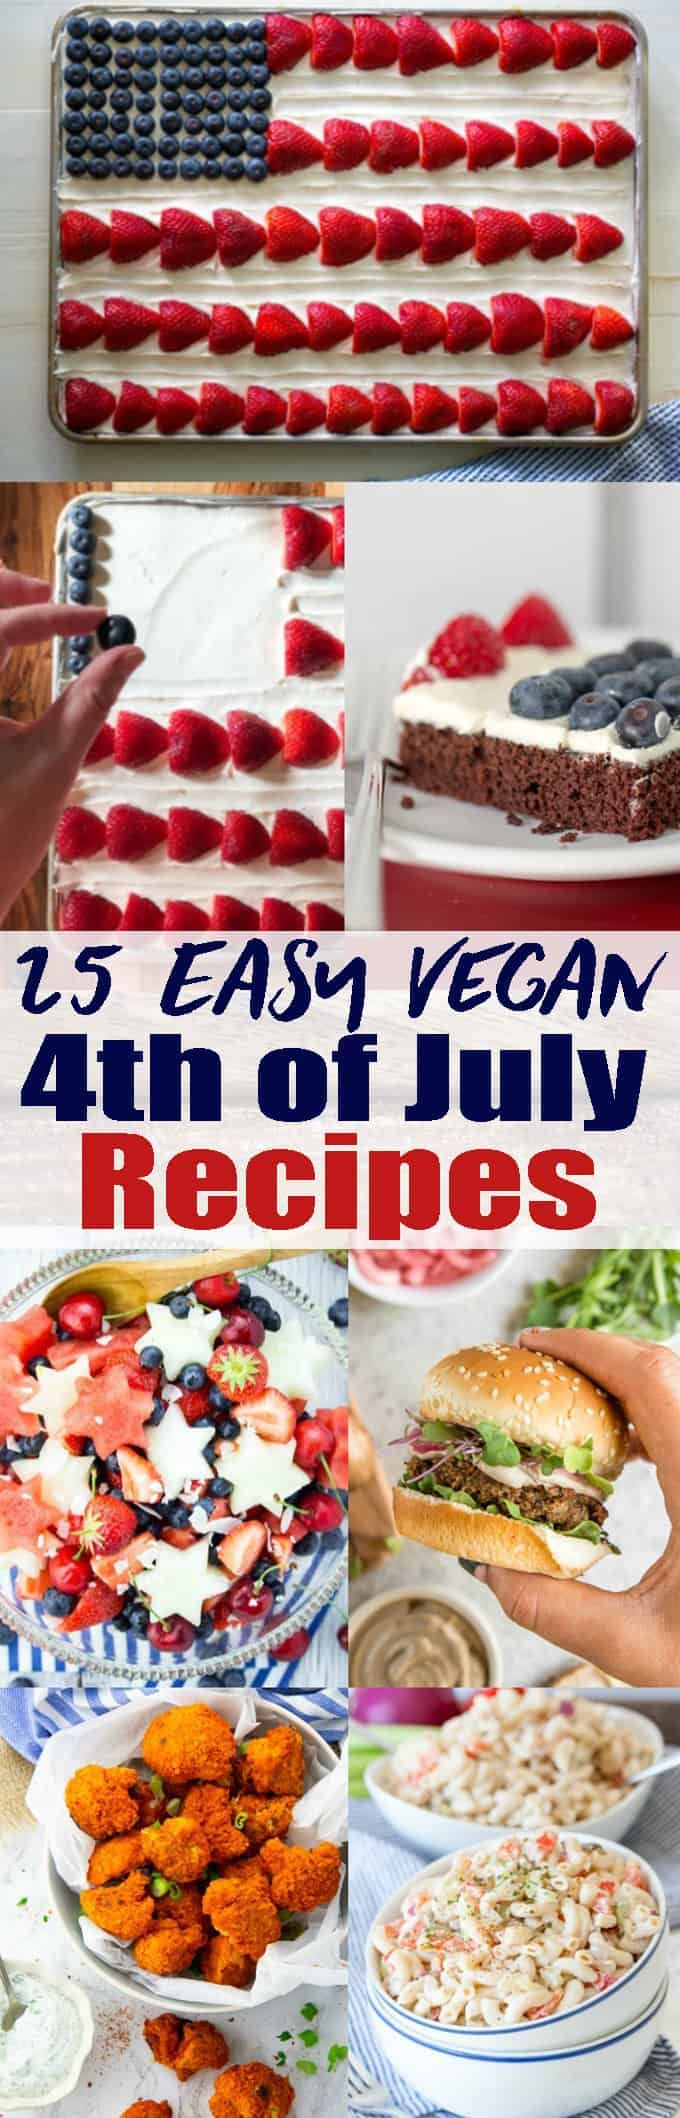 Celebrate Independence Day With These Vegan 4th Of July